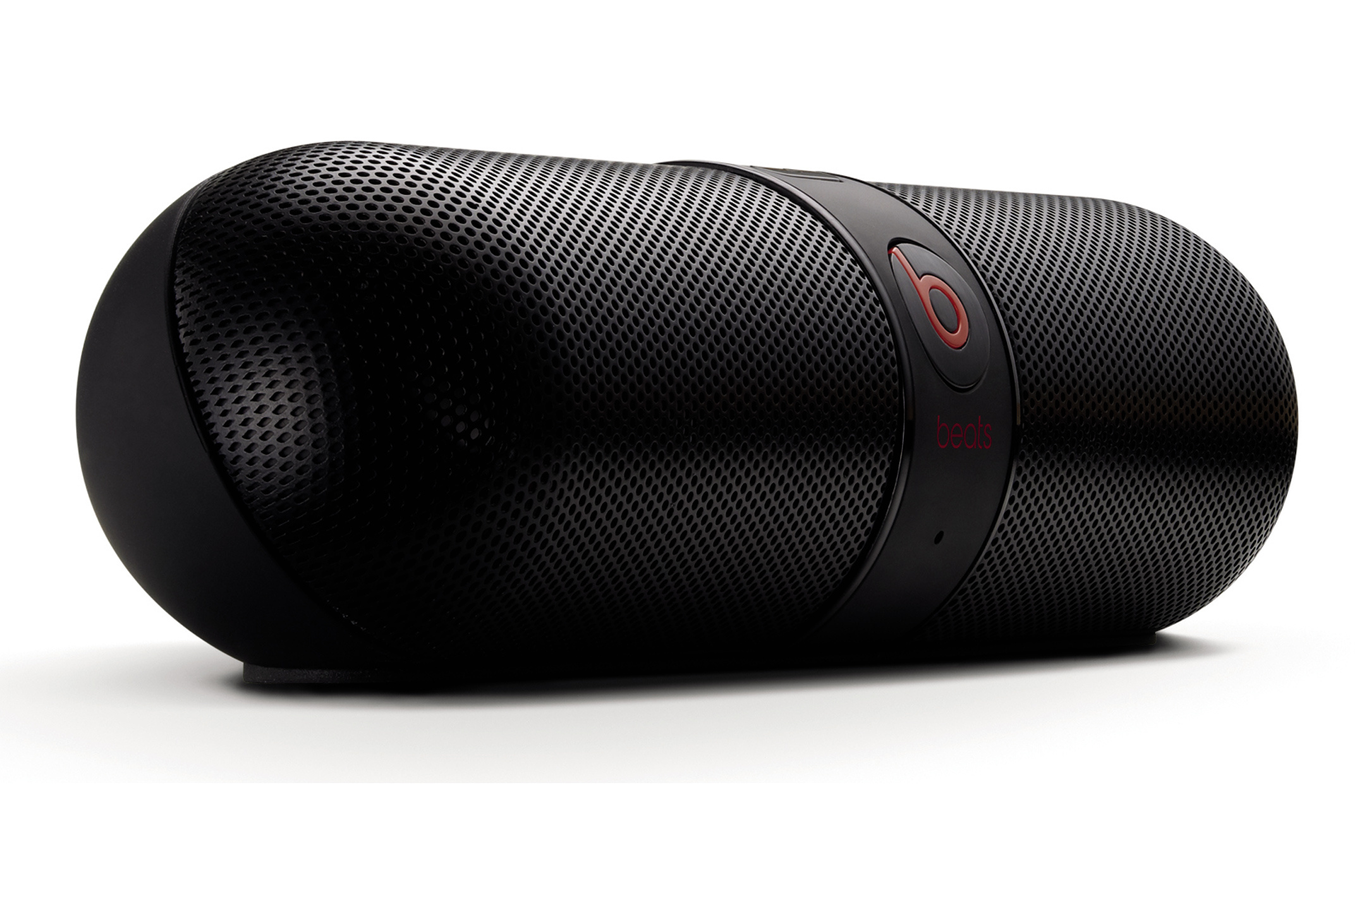 enceinte bluetooth sans fil beats pill v2 by dre noir pill bt 1362534 darty. Black Bedroom Furniture Sets. Home Design Ideas